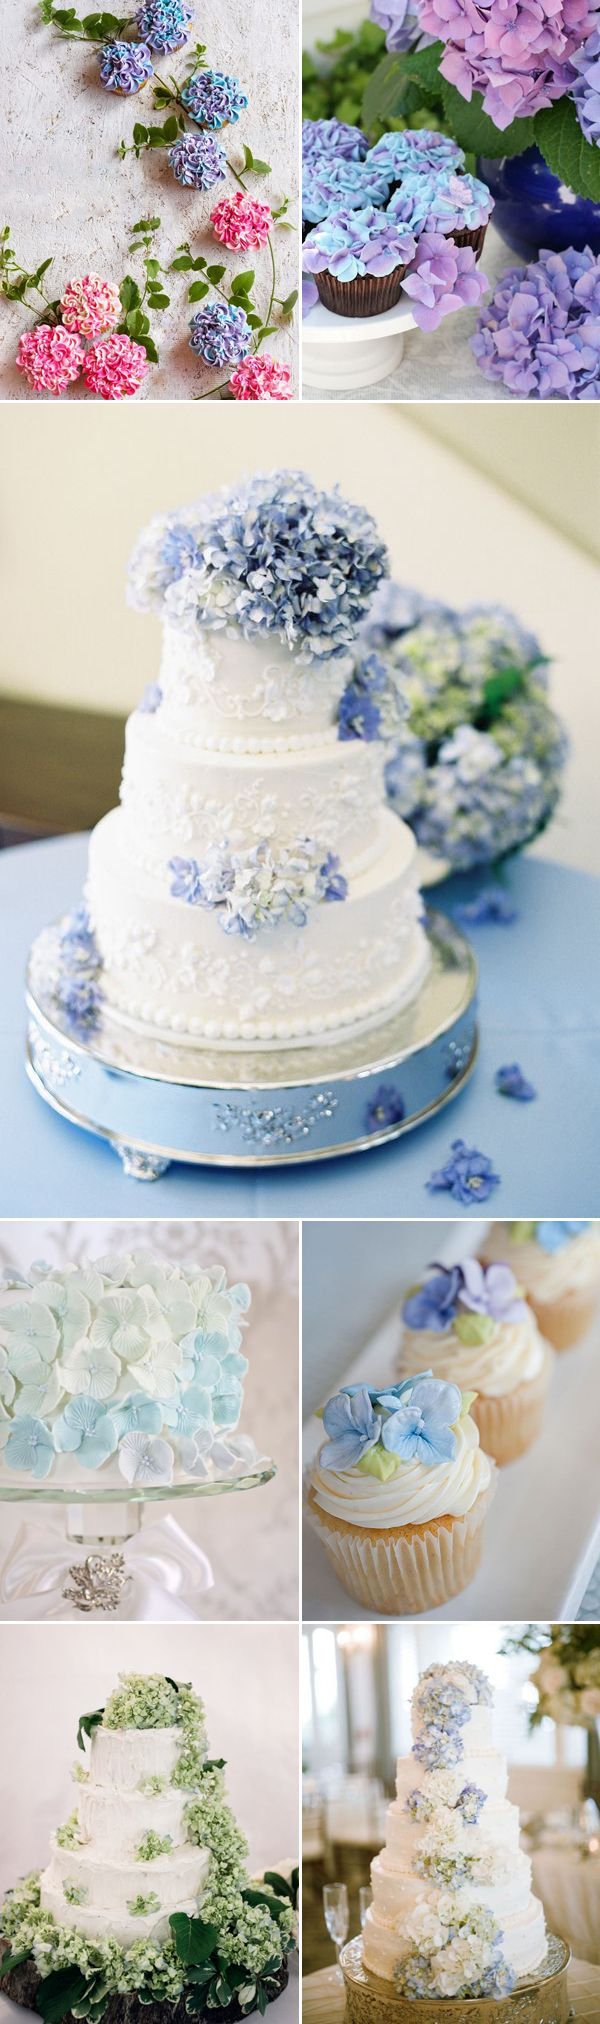 37 Beautiful Ways to decorate your wedding with hydrangeas - Desserts